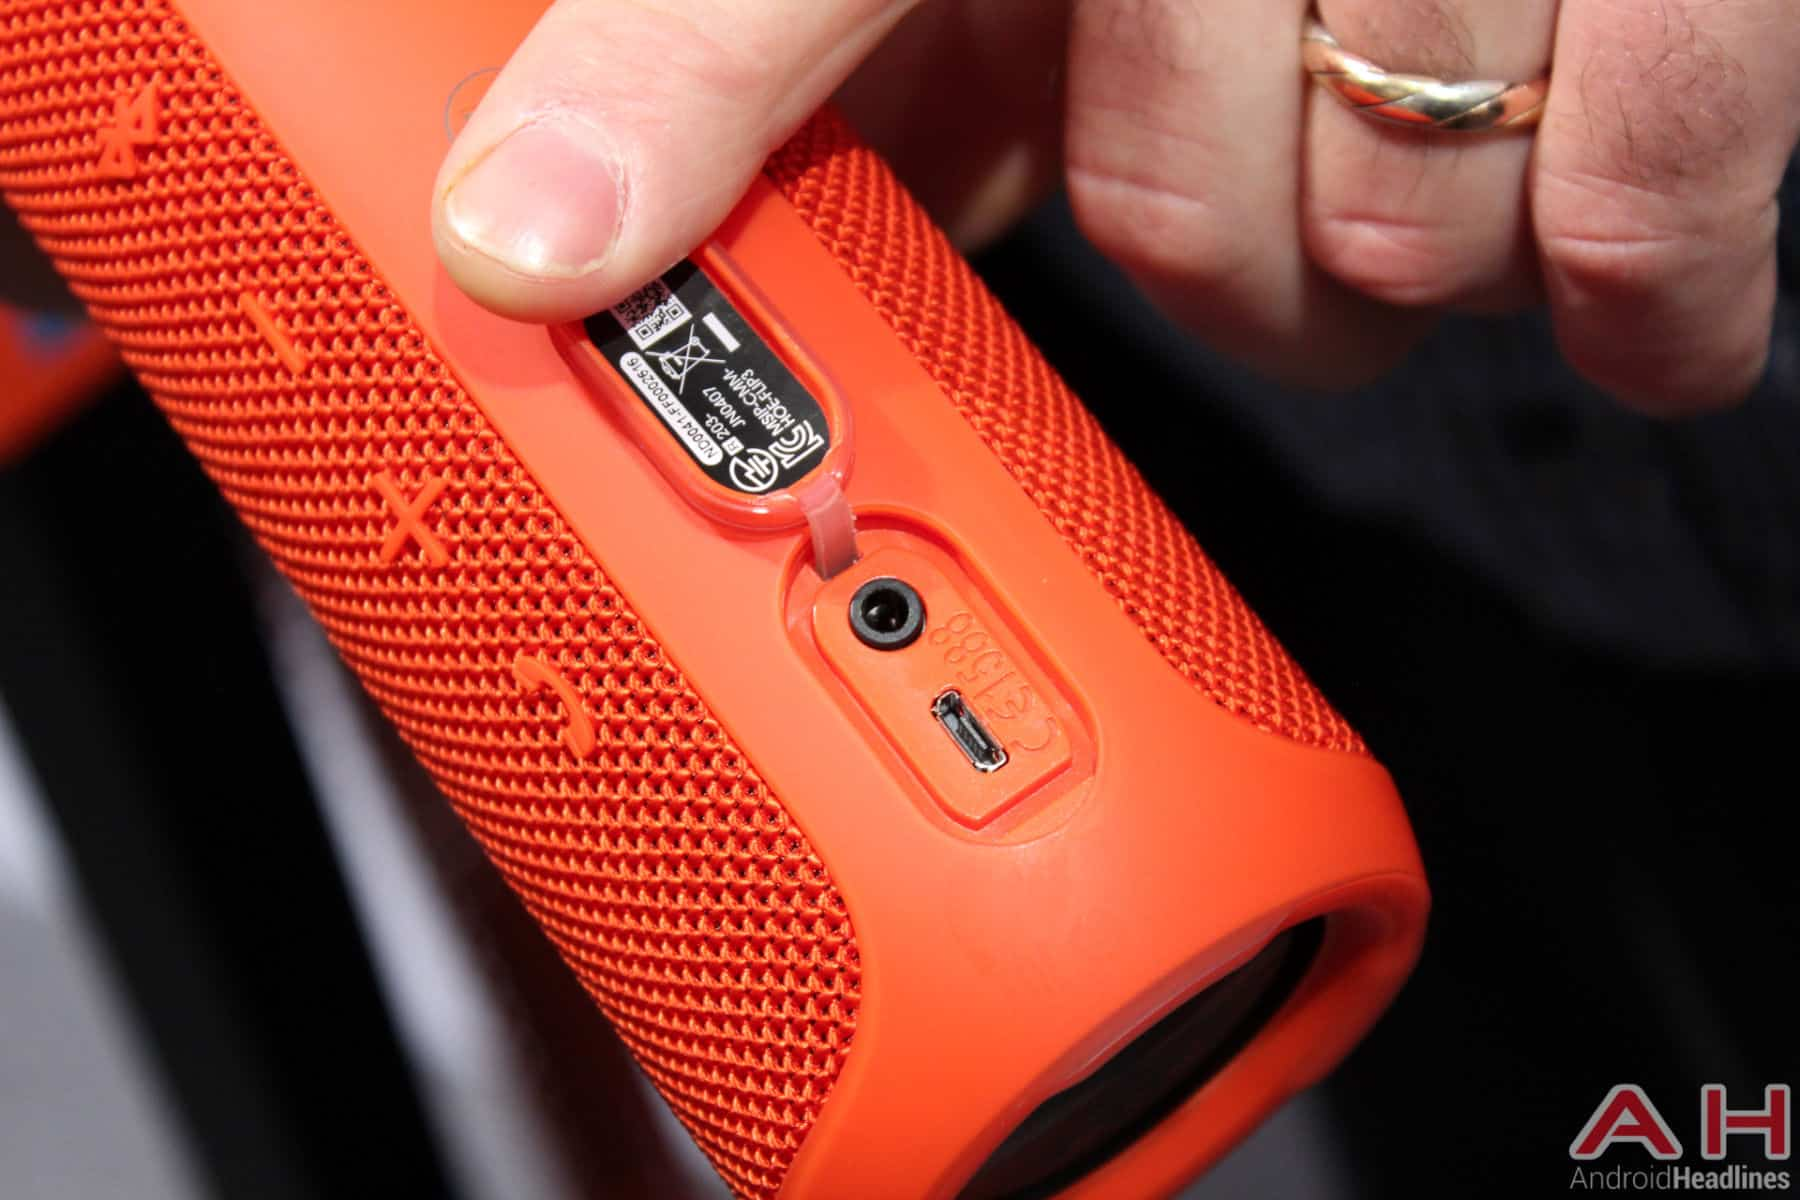 jbl flip 3 red. for those interested, check out our hands-on images below a closer look at the jbl flip 3 bluetooth speaker jbl red